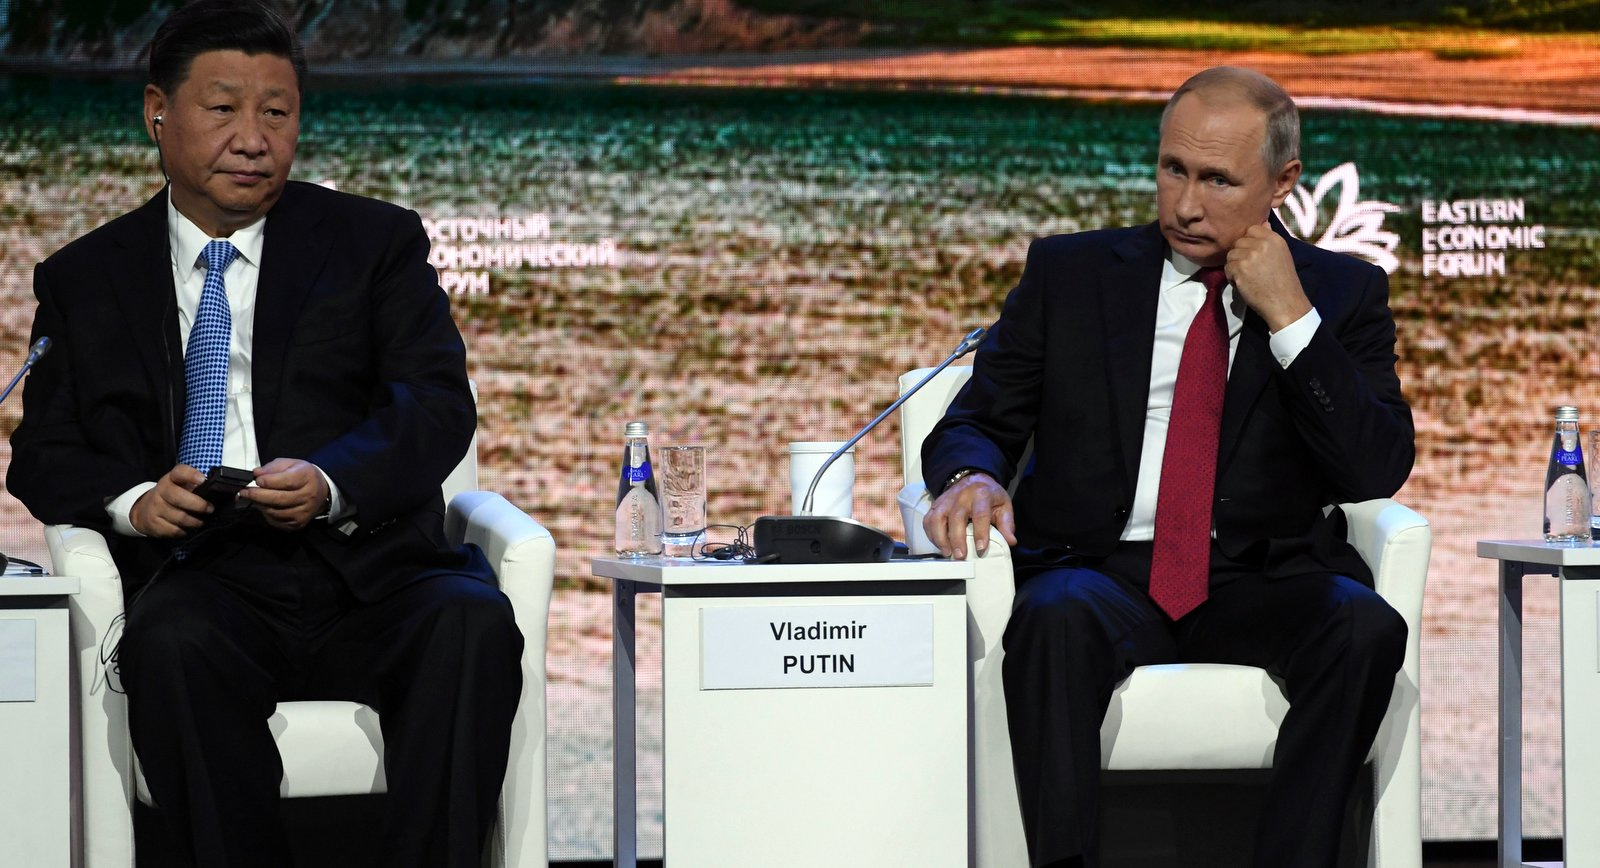 Why Russia and China Are Strengthening Security Ties - Carnegie